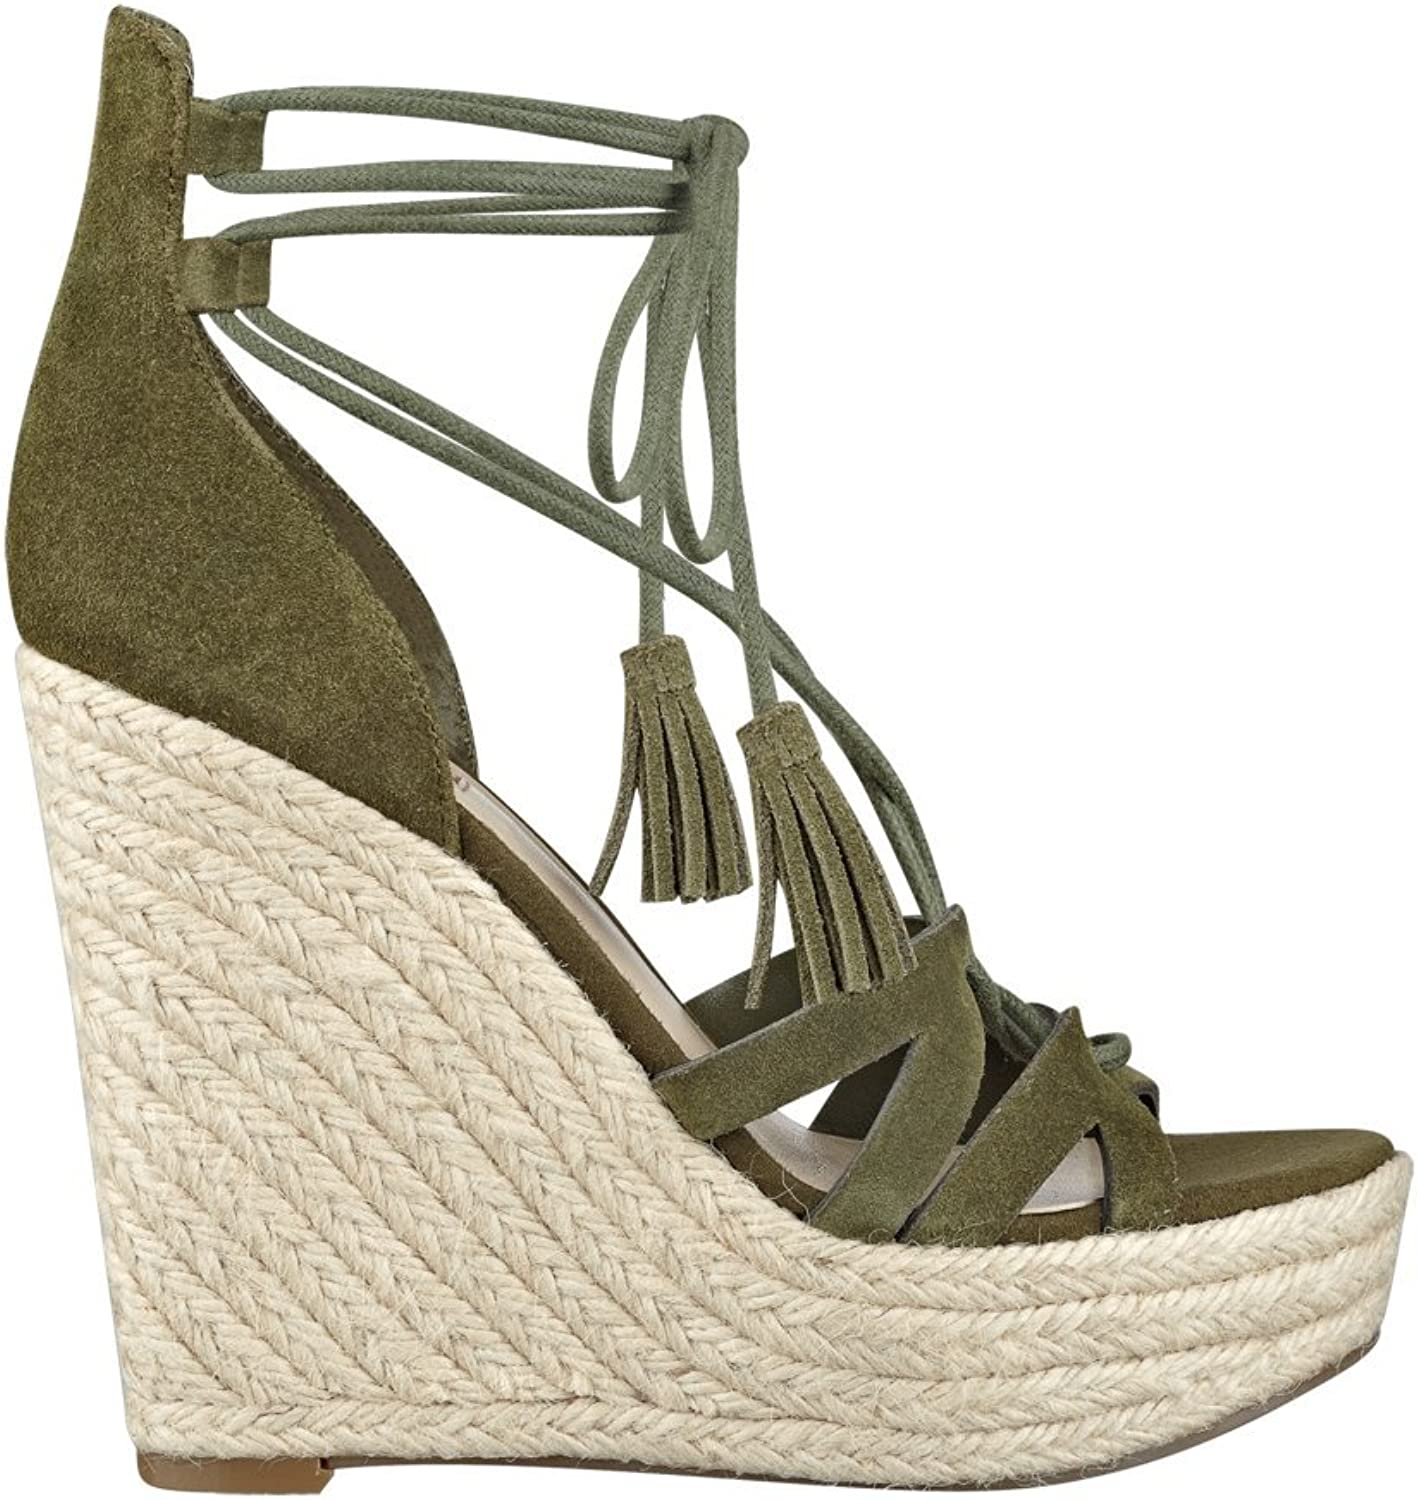 GUESS Ollina Python-Print Wedges Green